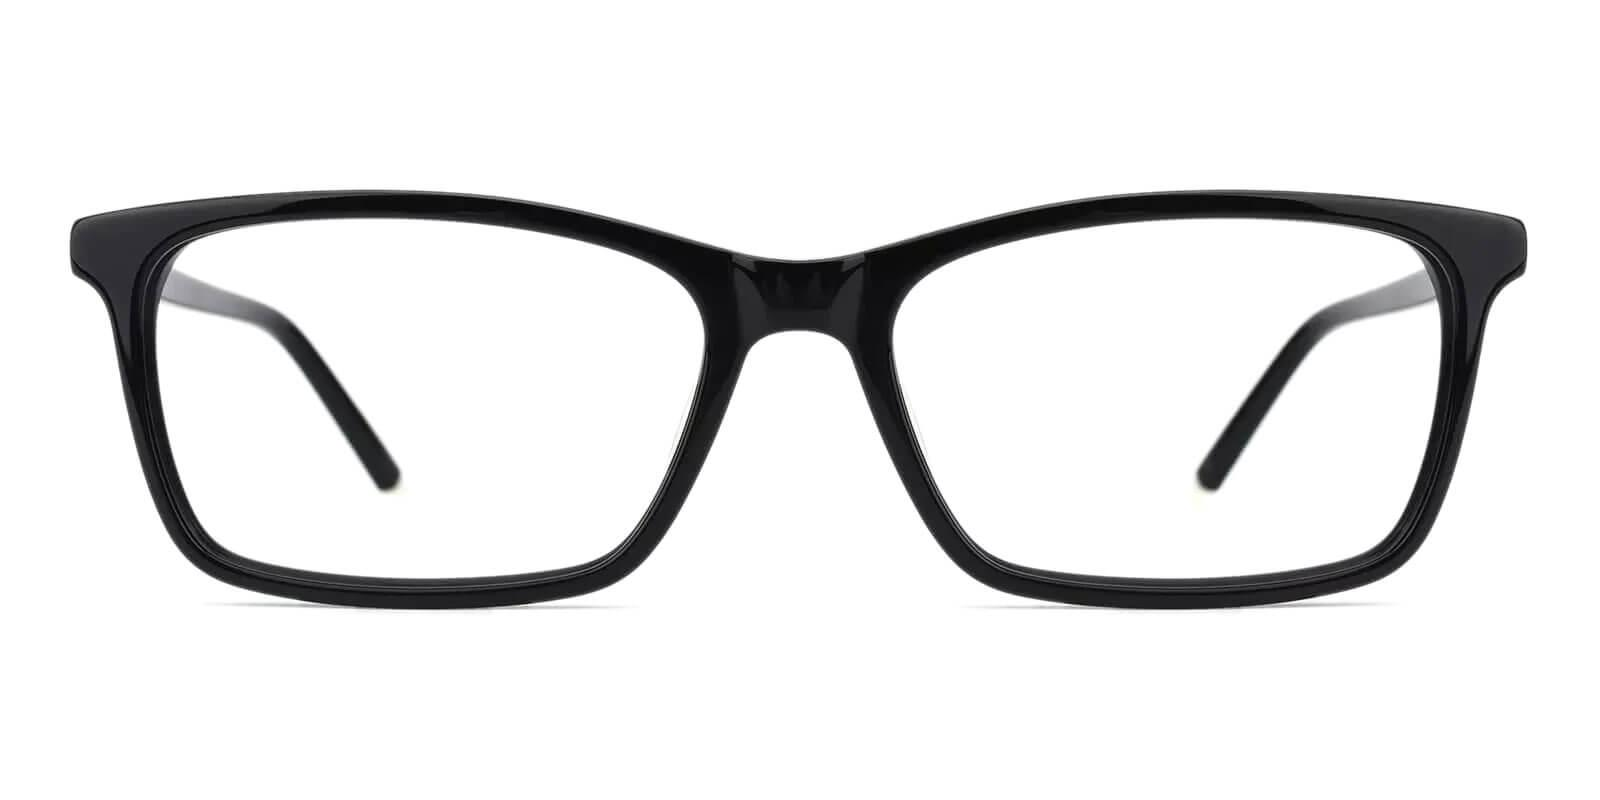 Quasqueton Black Acetate Eyeglasses , SpringHinges , UniversalBridgeFit Frames from ABBE Glasses